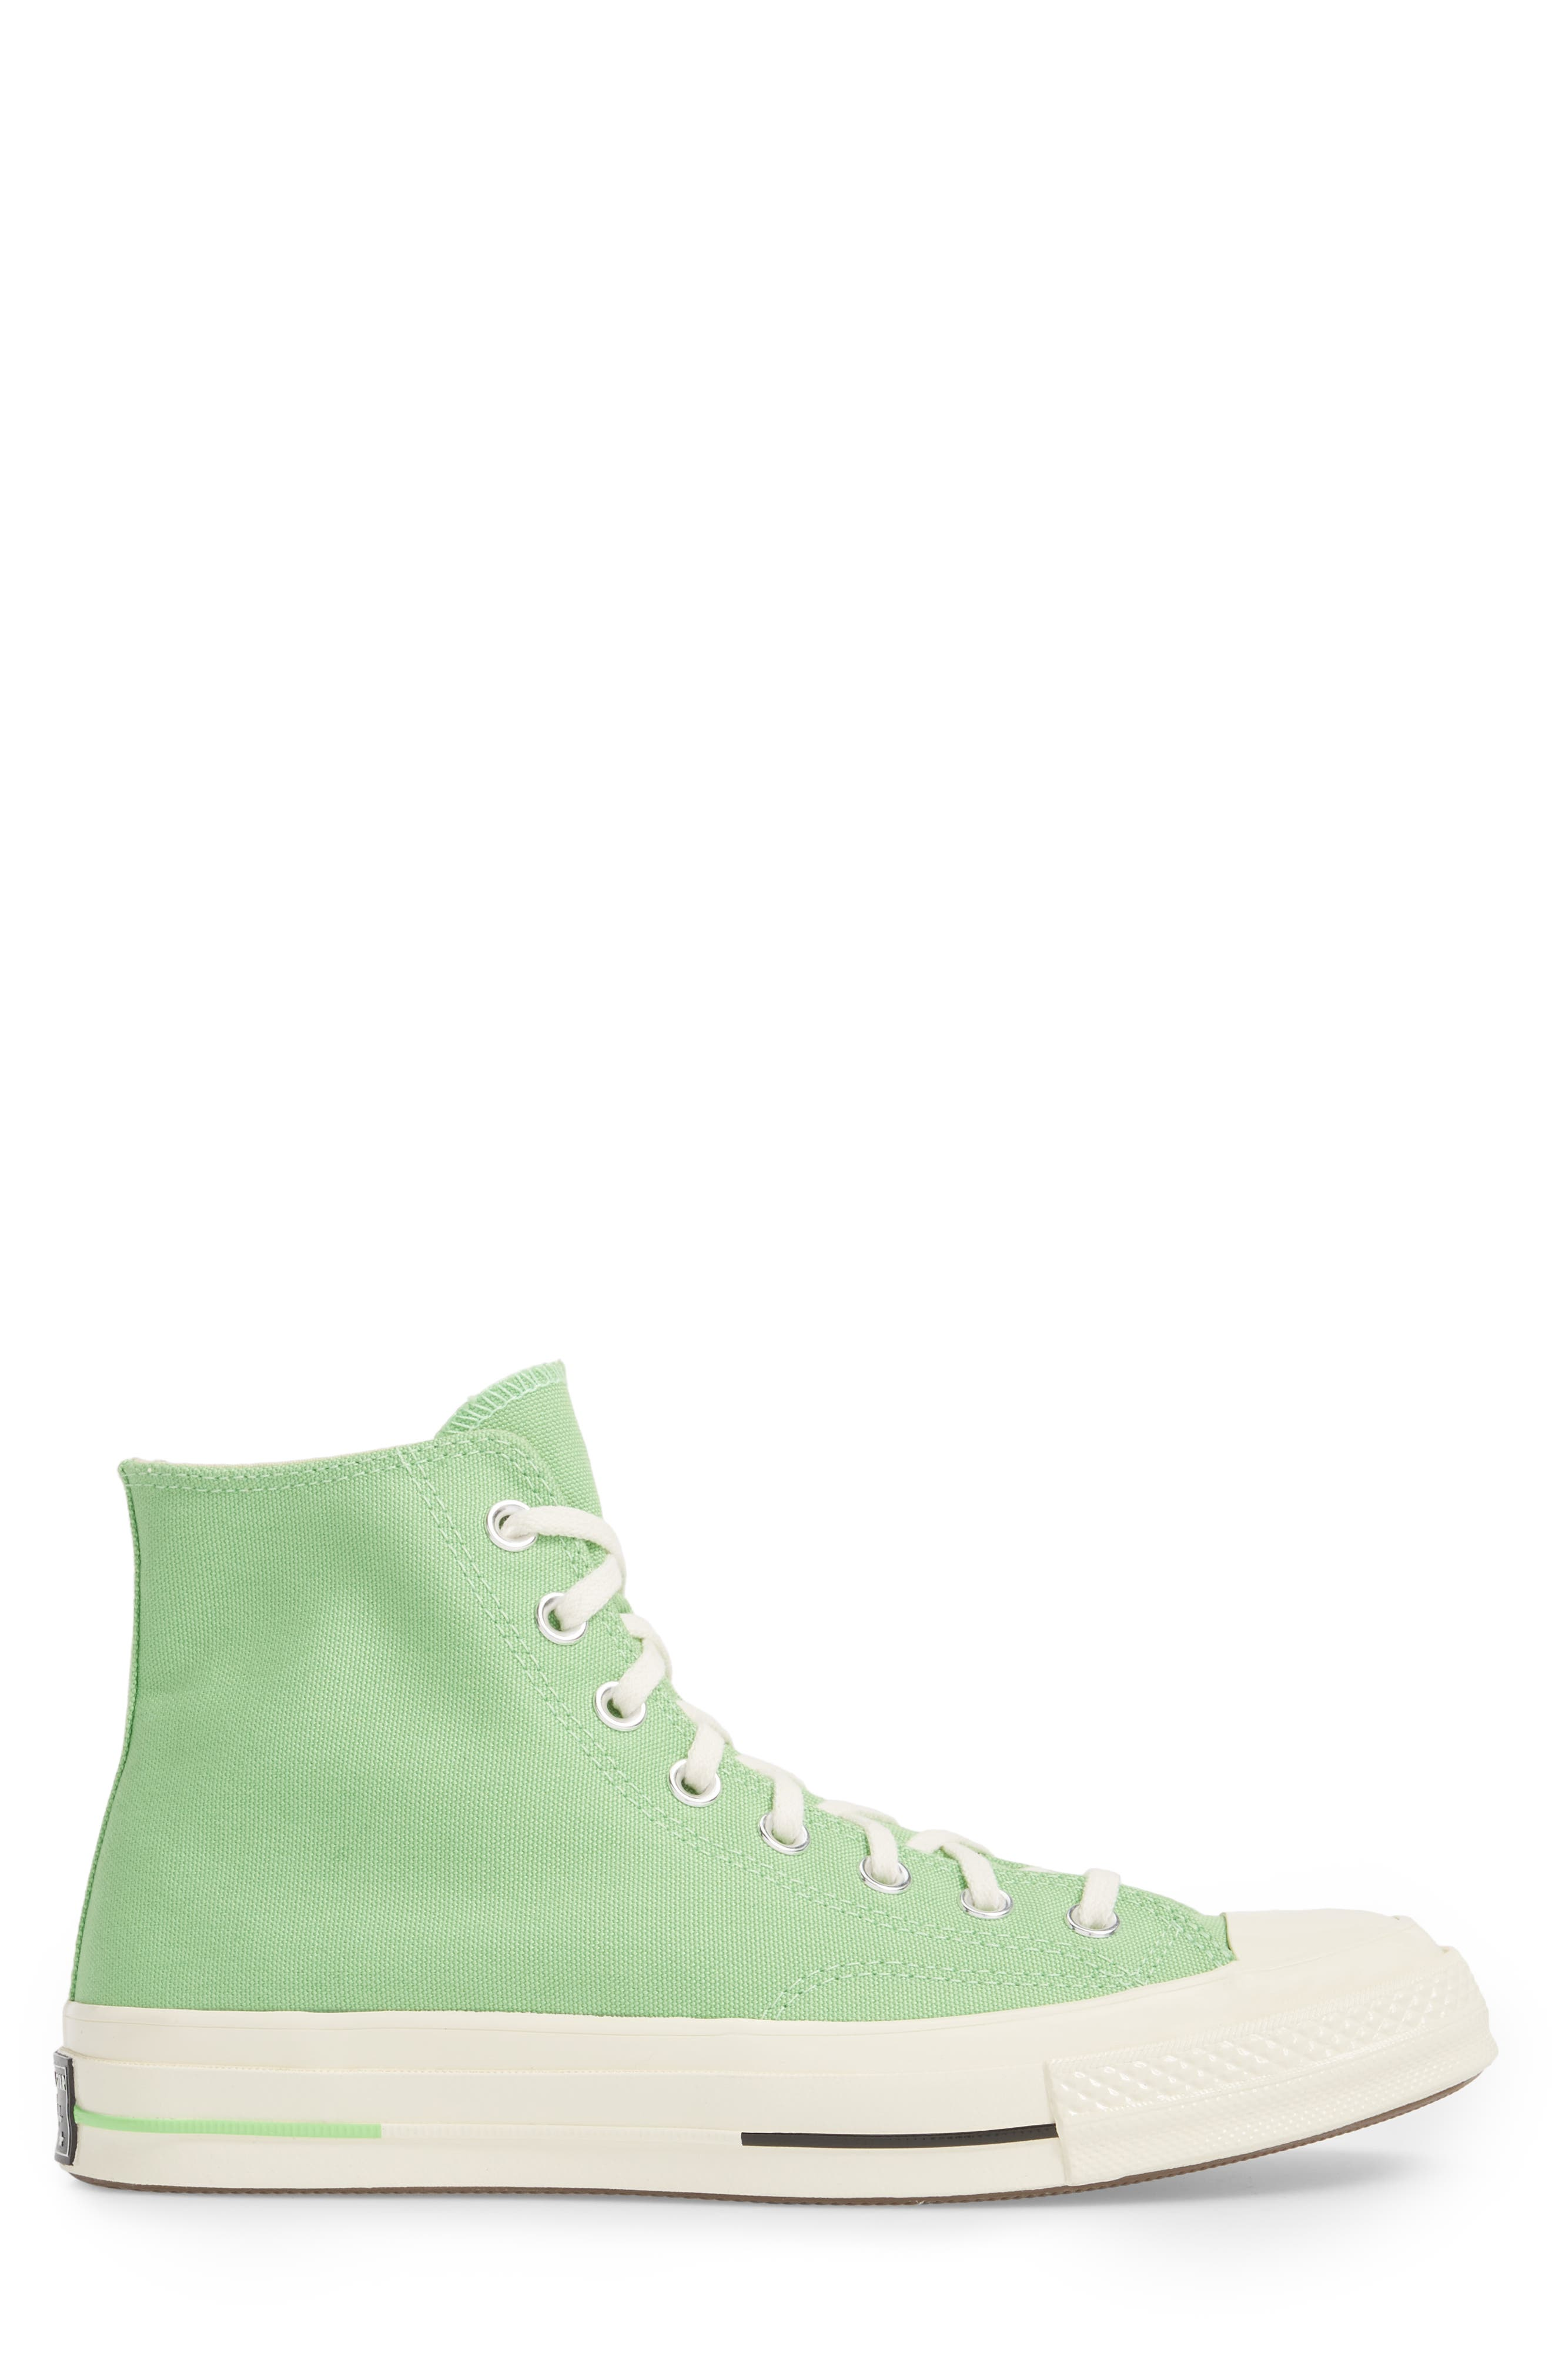 Chuck Taylor<sup>®</sup> All Star<sup>®</sup> 70 Brights High Top Sneaker,                             Alternate thumbnail 3, color,                             Illusion Green